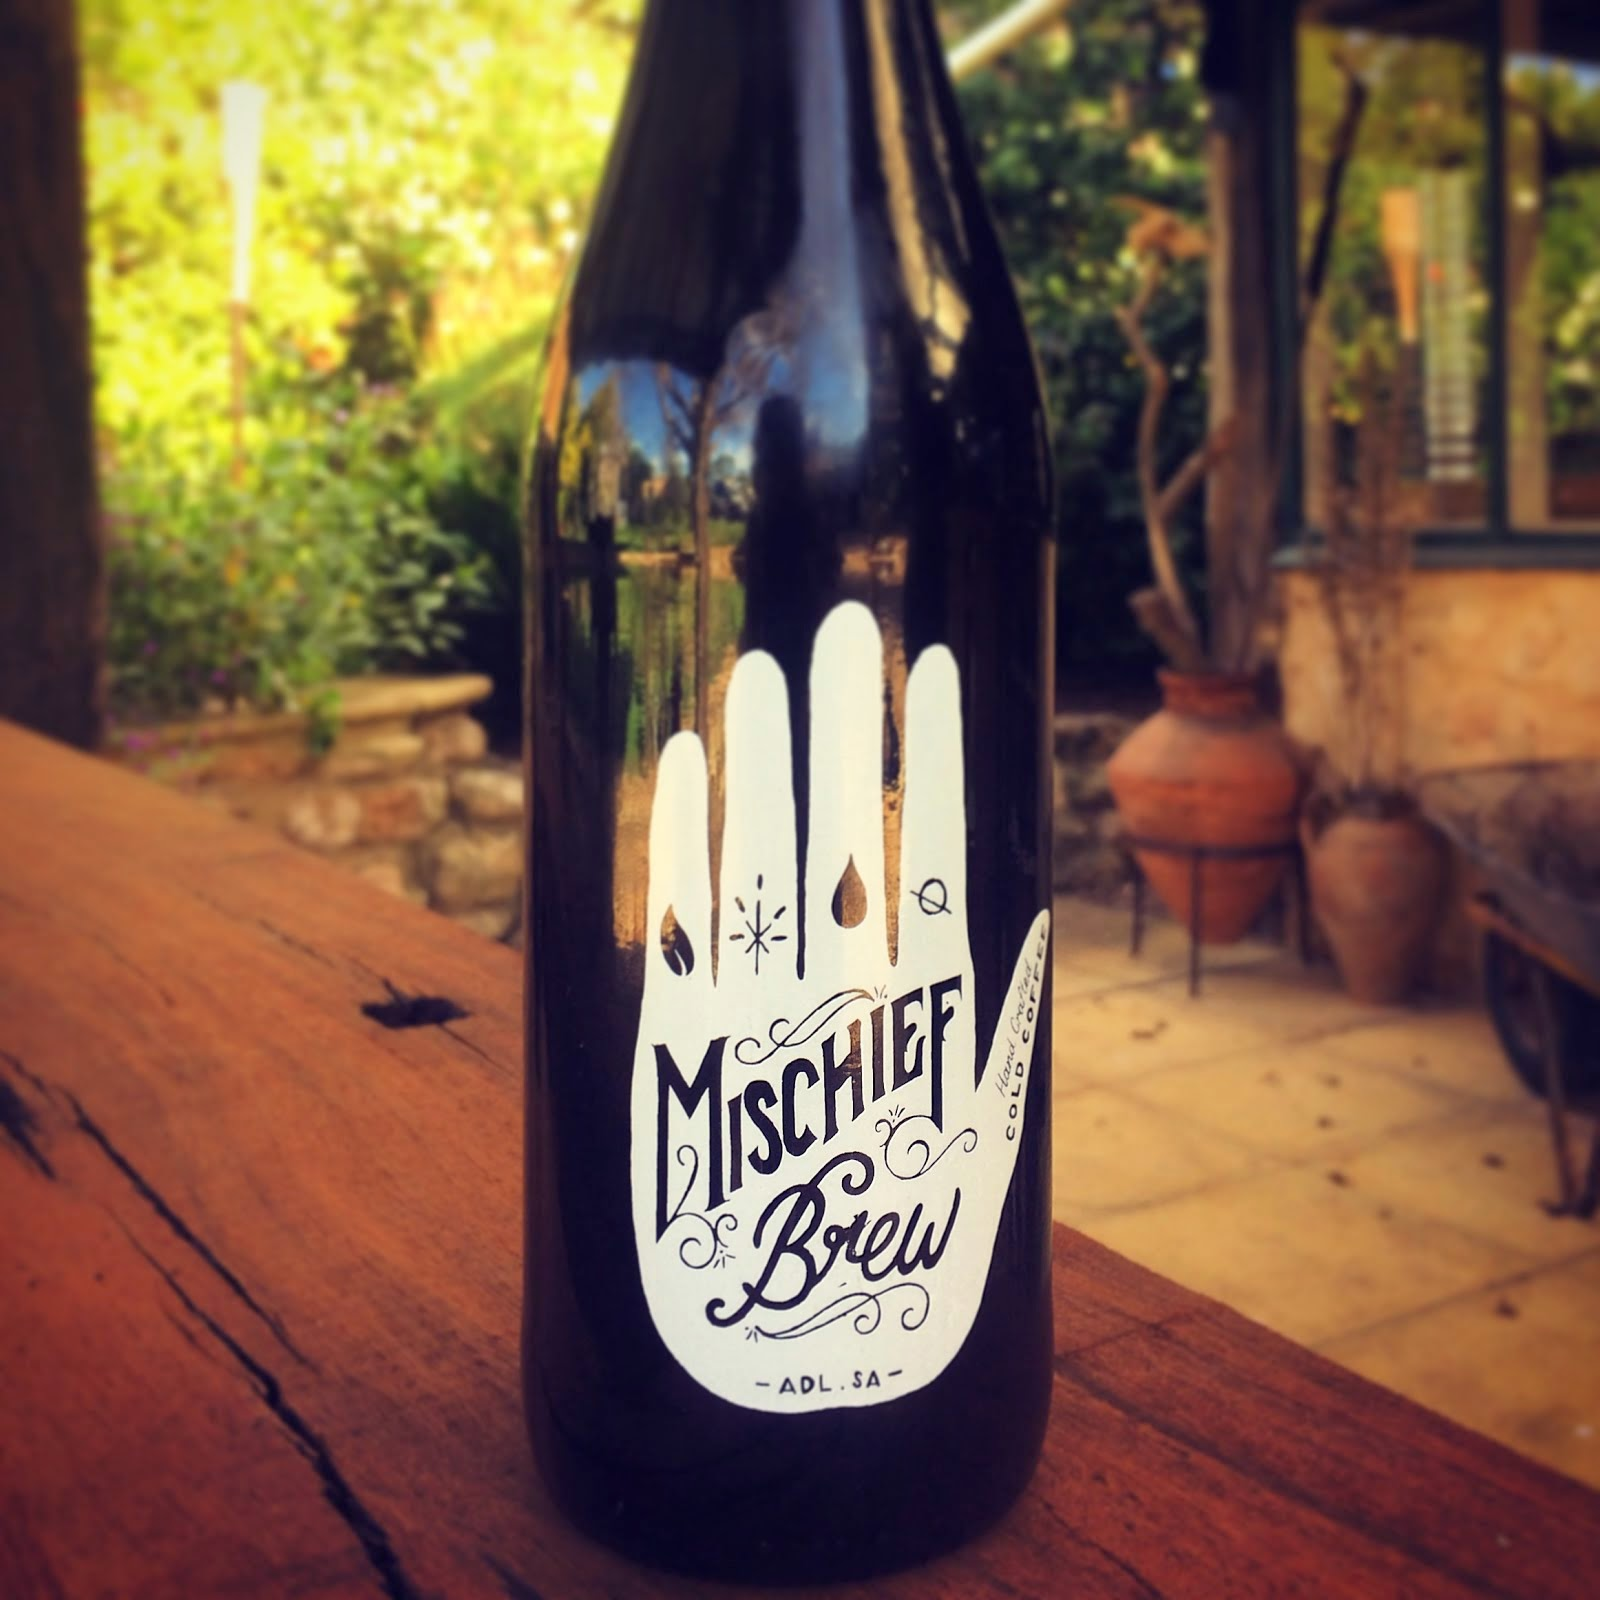 Mischief Brew - Adelaide cold brew coffee